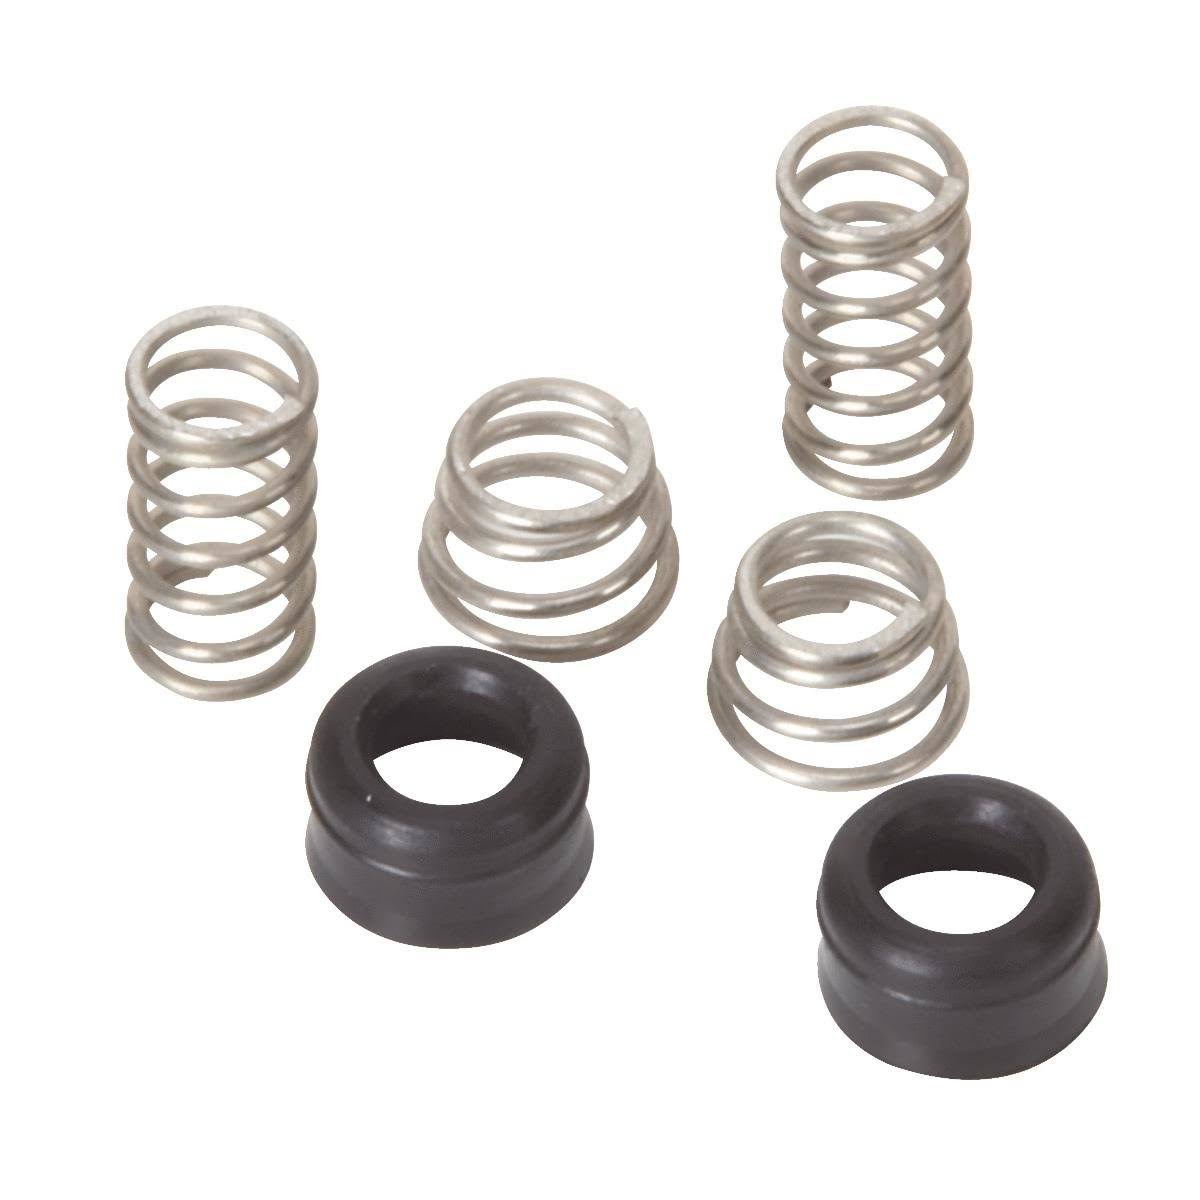 Do it Seal Seats and Springs Faucet Repair Kit